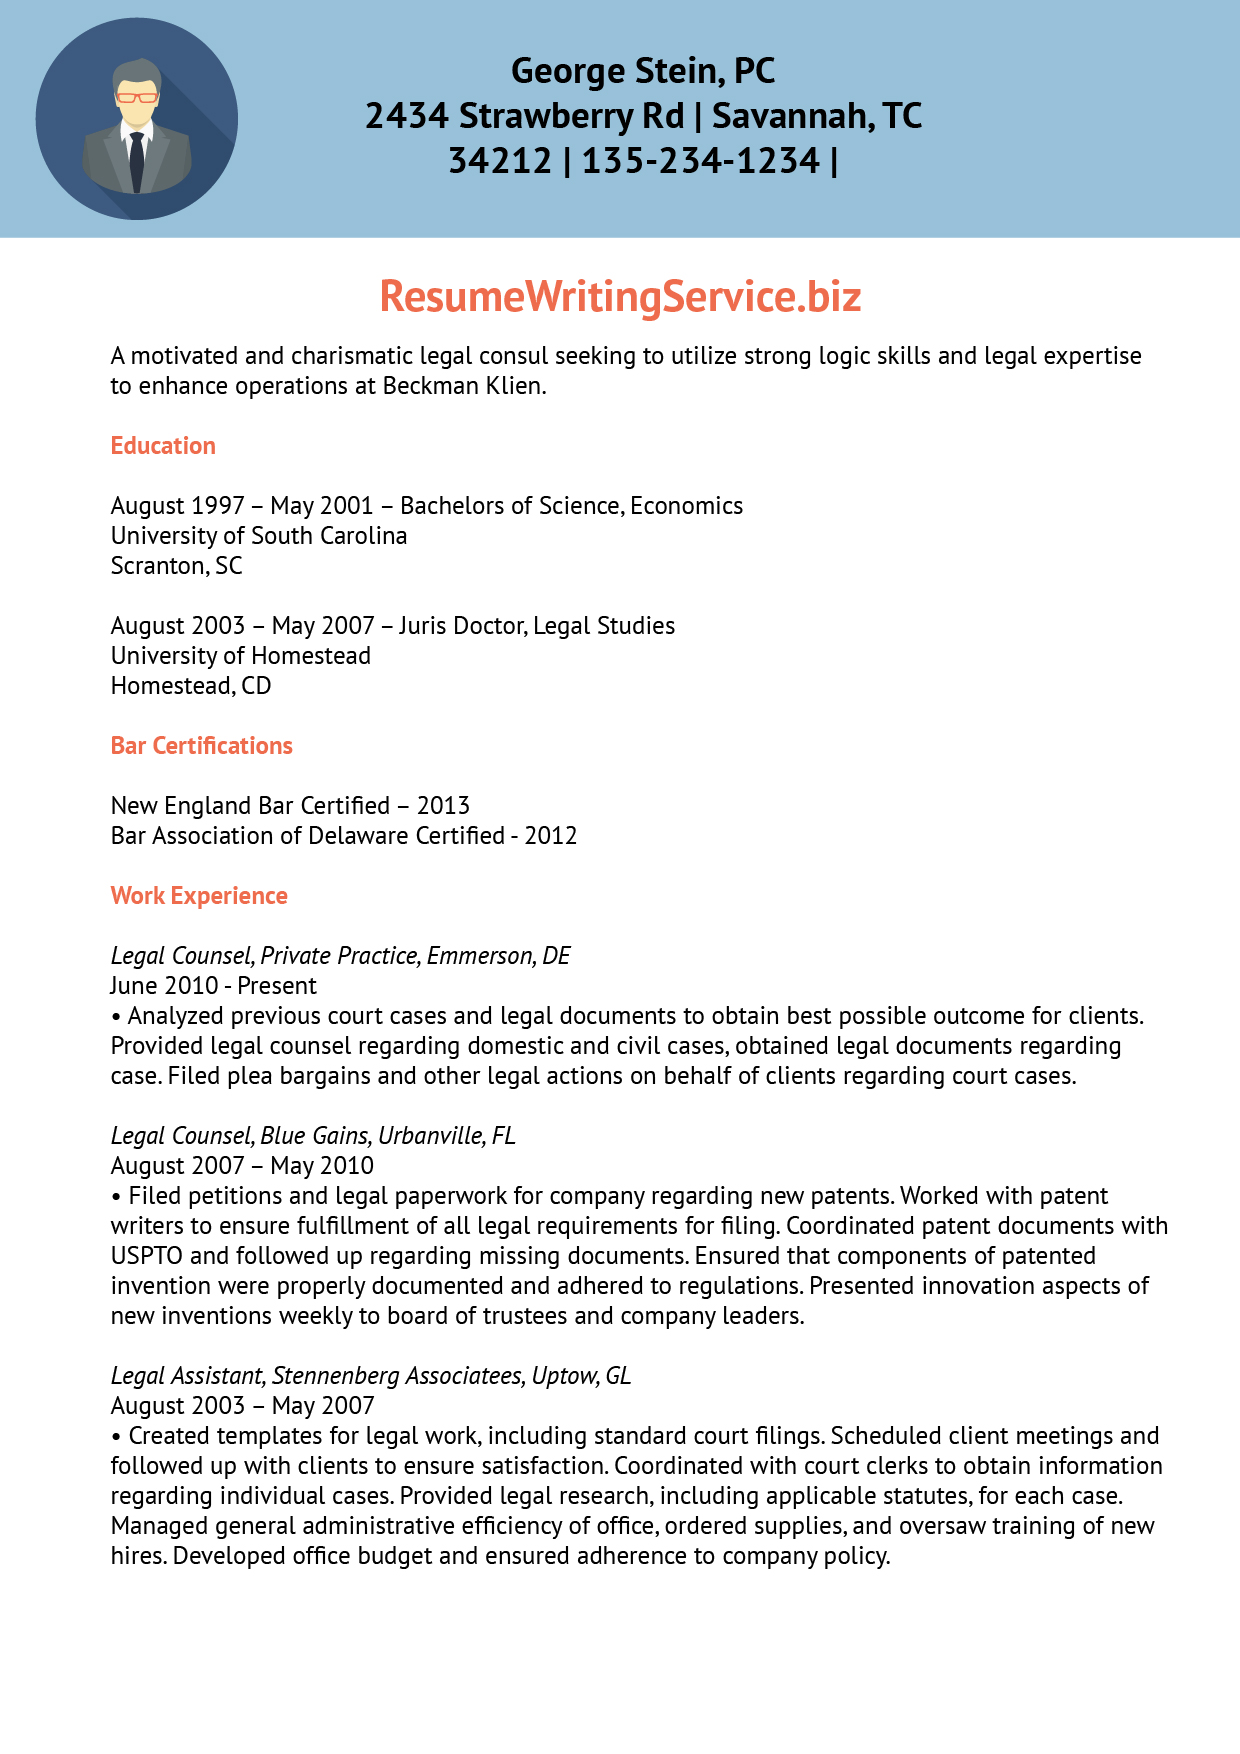 resume writing services experience